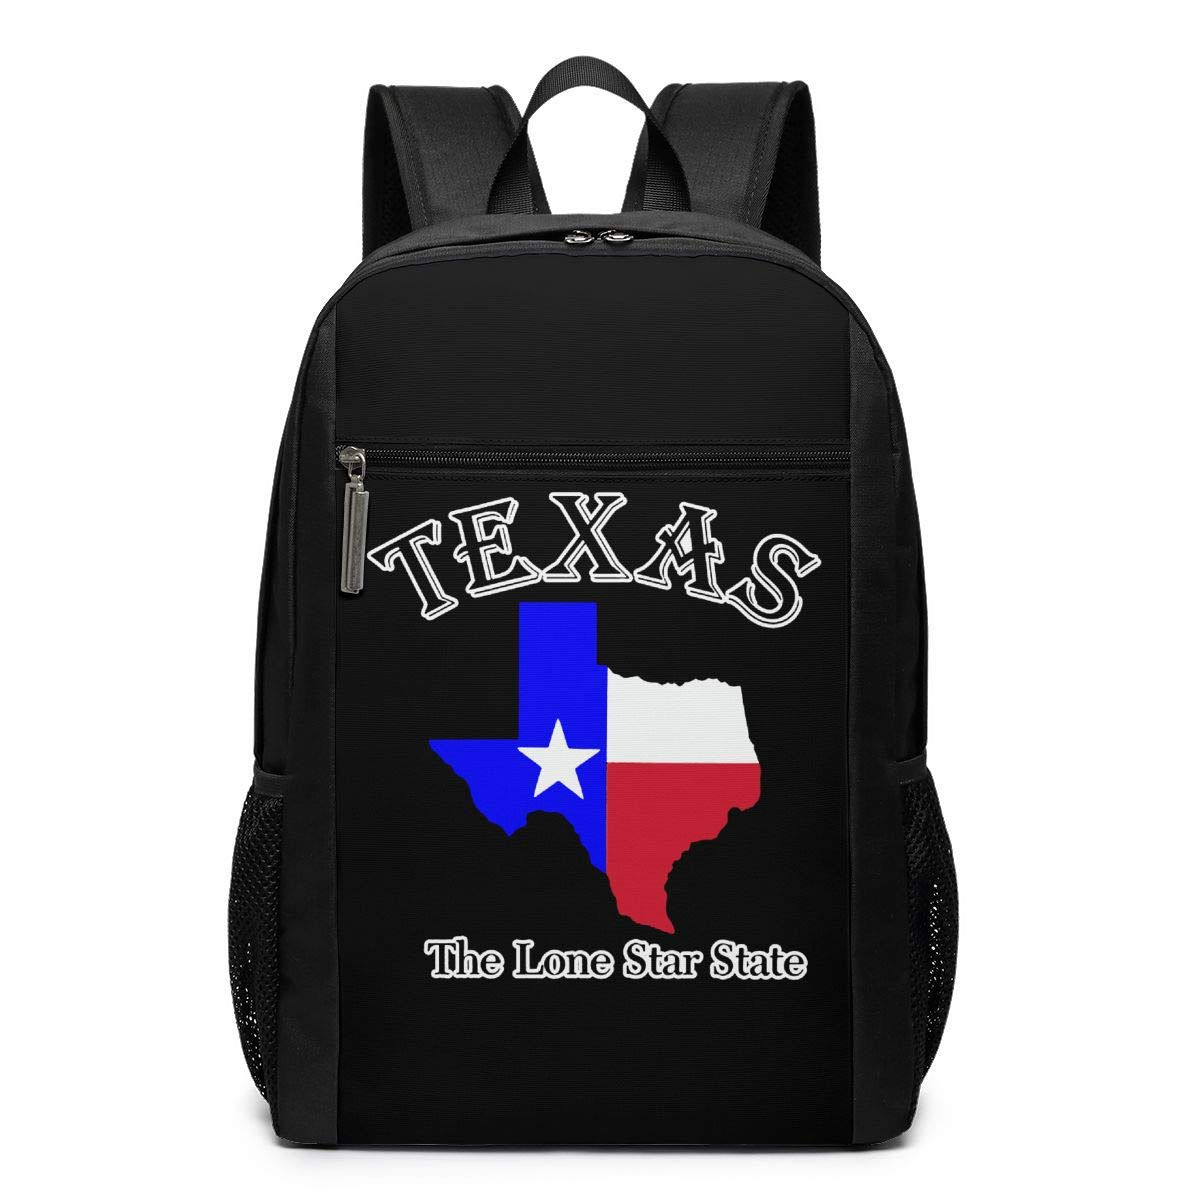 Amazon.com: Texas, The Lone Star State Travel